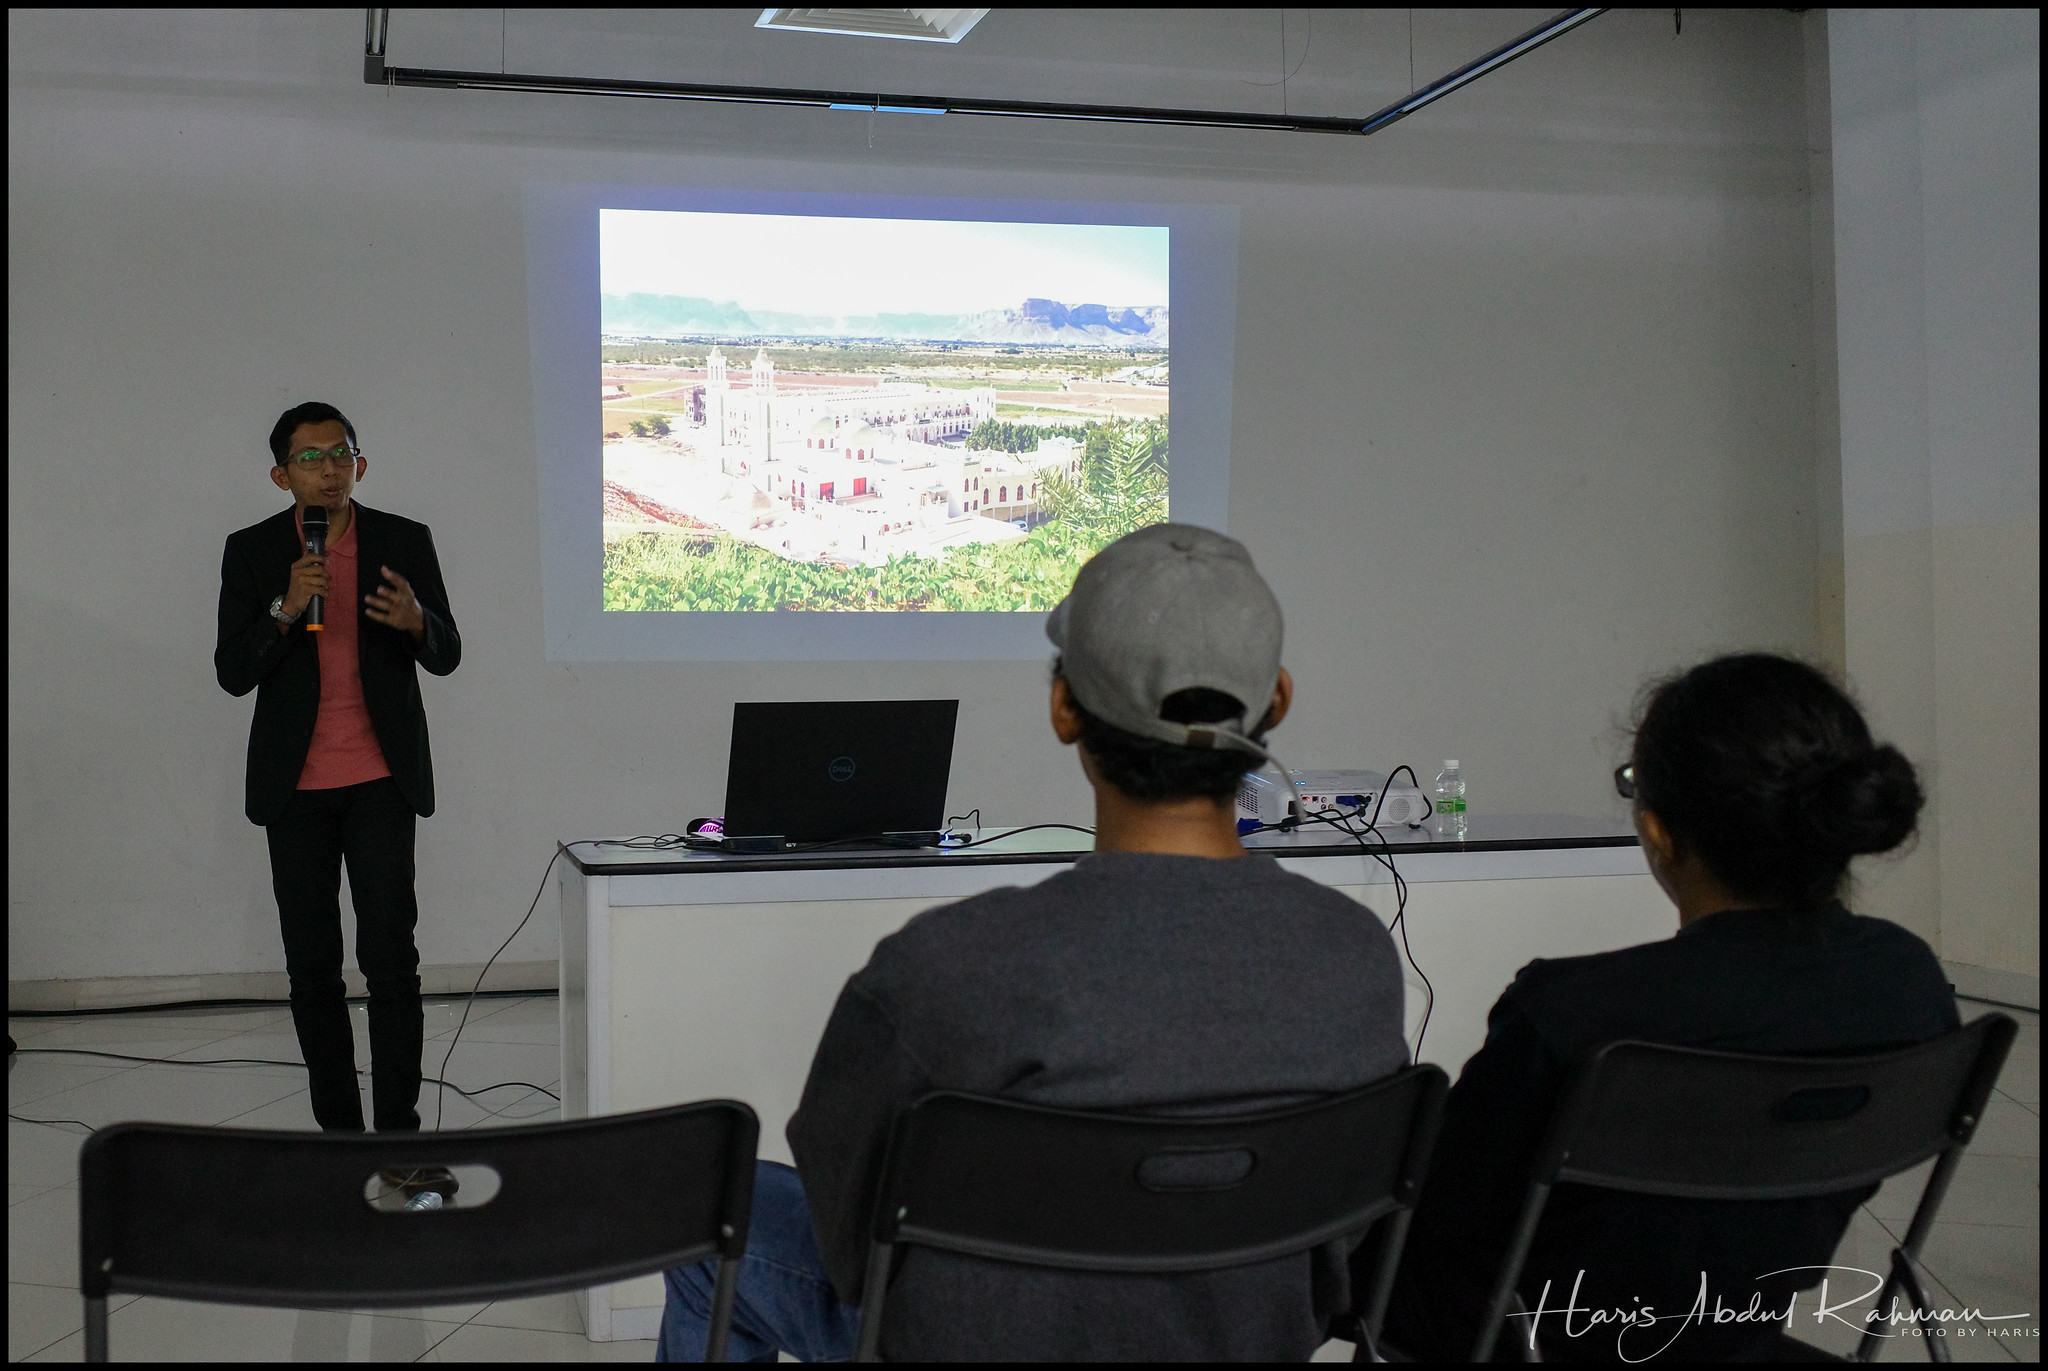 This speaker, Lah Sadzik was with an NGO on a humanitarian mission in Yemen when he took these photos